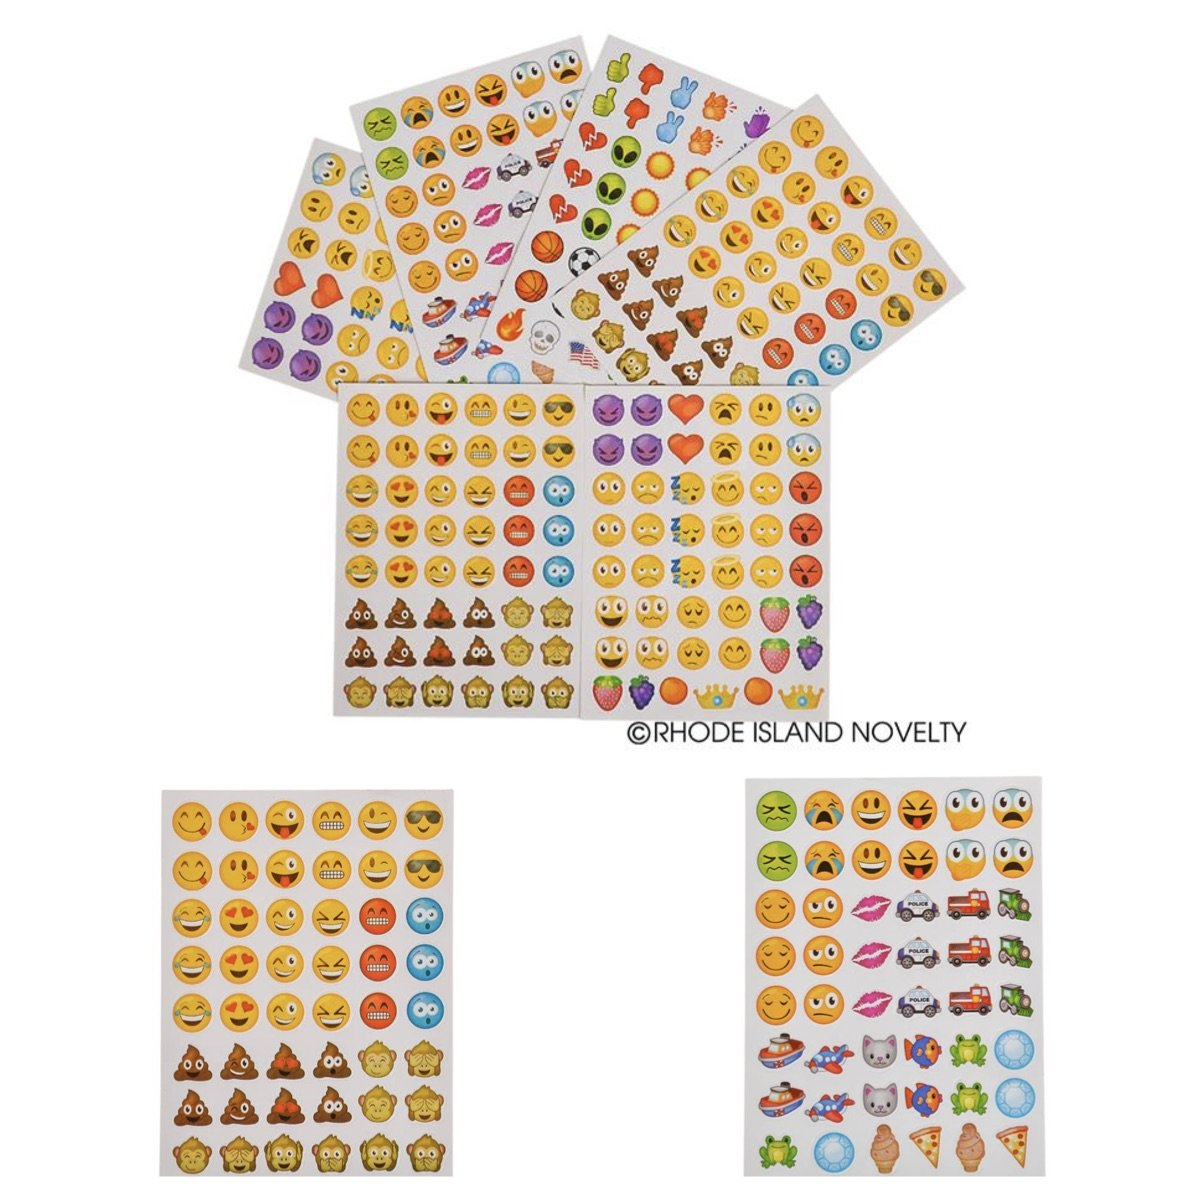 Daycare Smiley PARTIES Classroom Teachers REWARDS PARTY FAVORS 1728 EMOJI Emoticon STICKERS 36 Sheets of 48 Stickers DOCTOR 36 TATTOOS